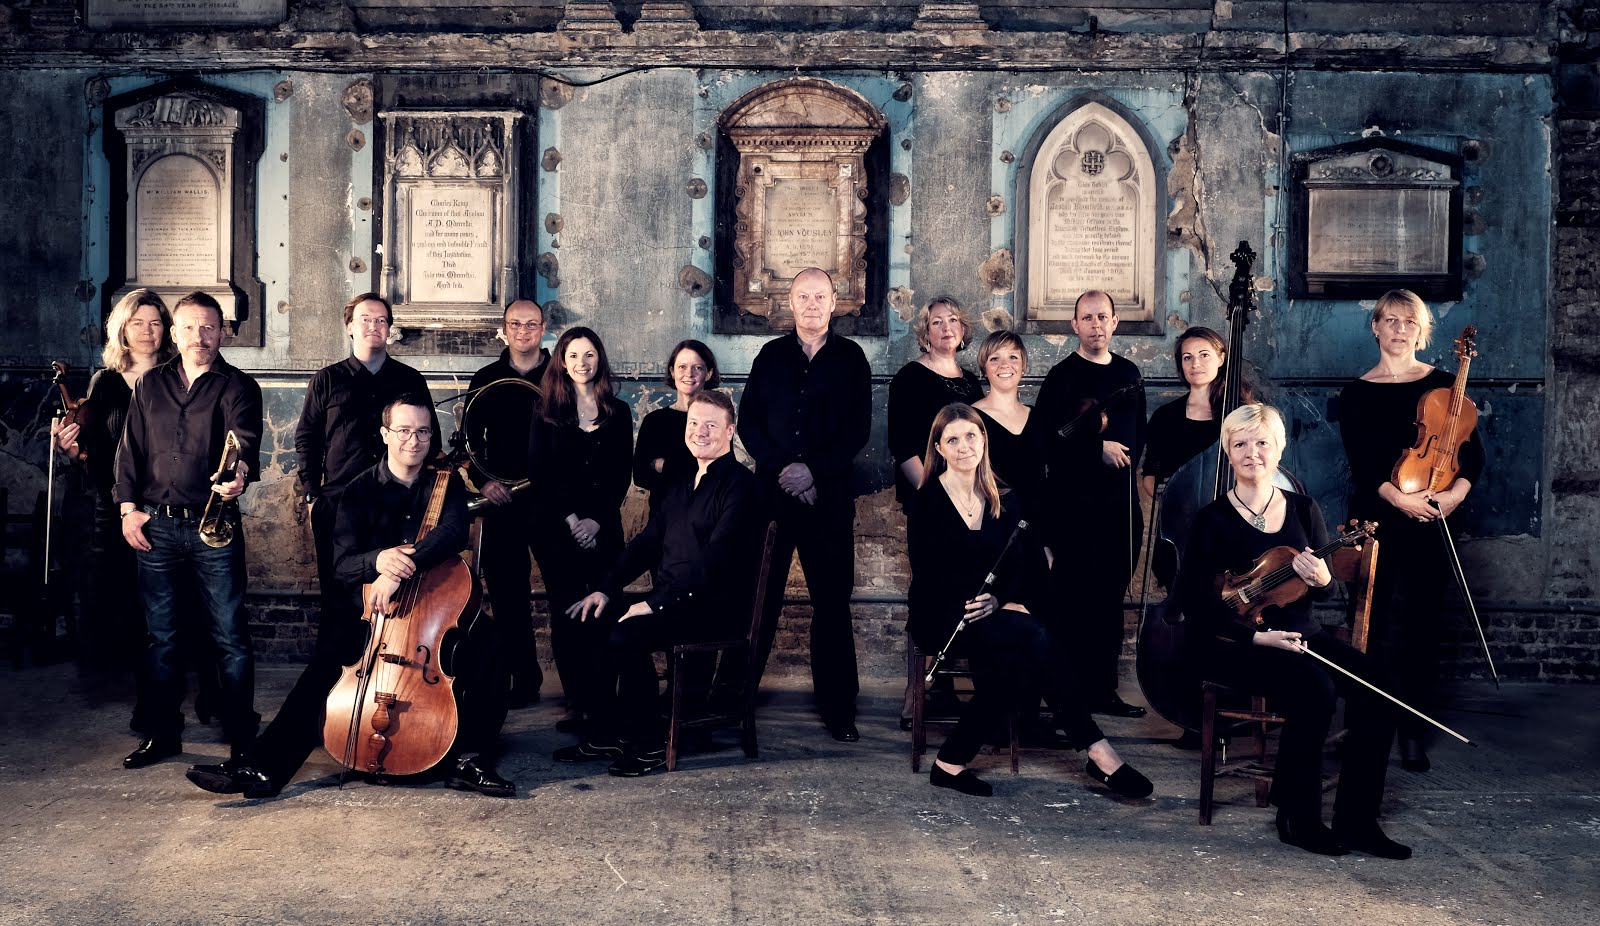 GABRIELI CONSORT AND PLAYERS, PAUL McCREESH